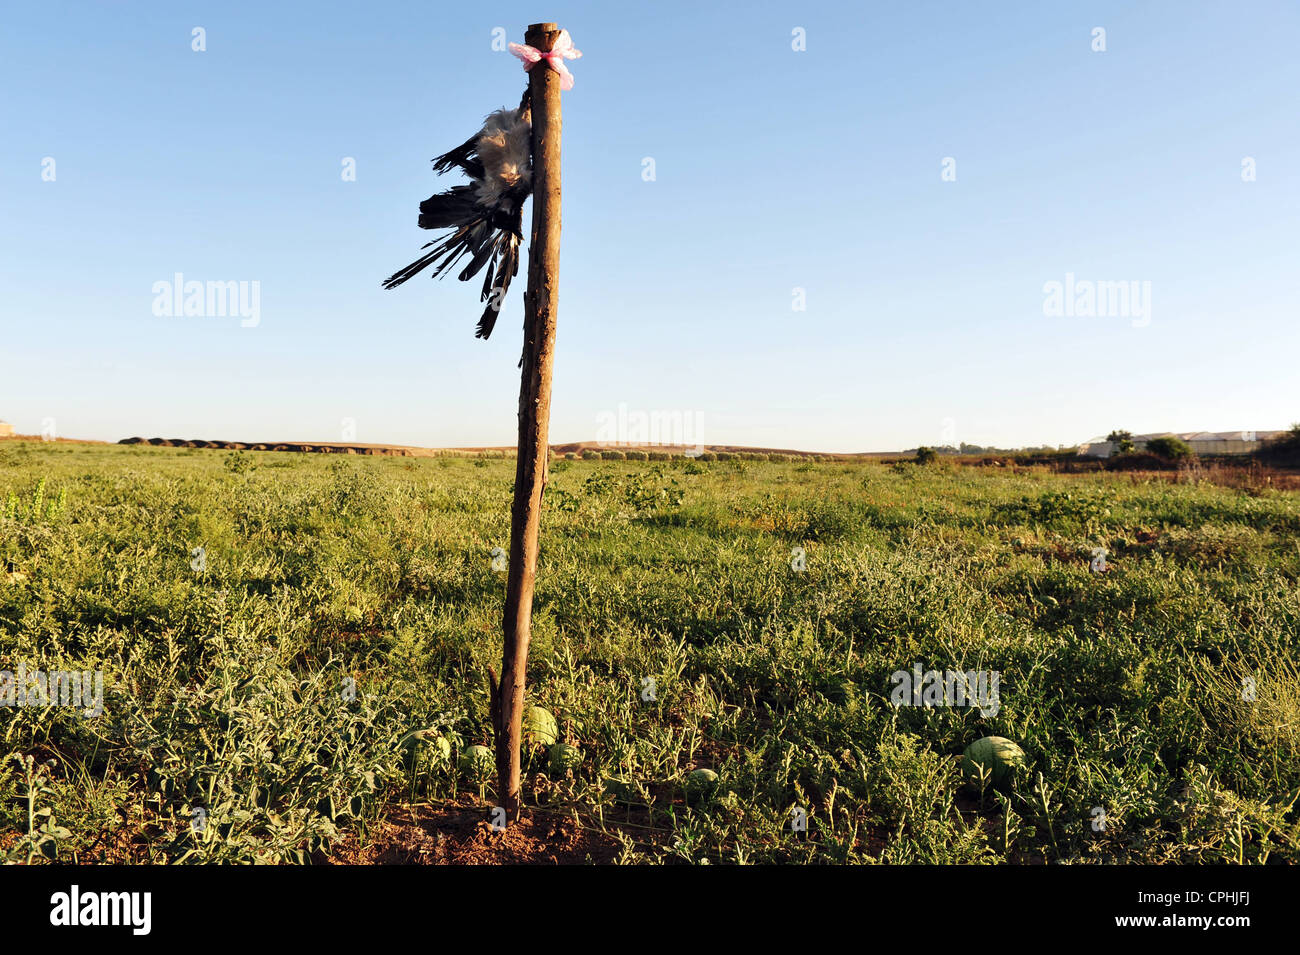 A dead crow hang in a watermelon field used to scare live crows. - Stock Image